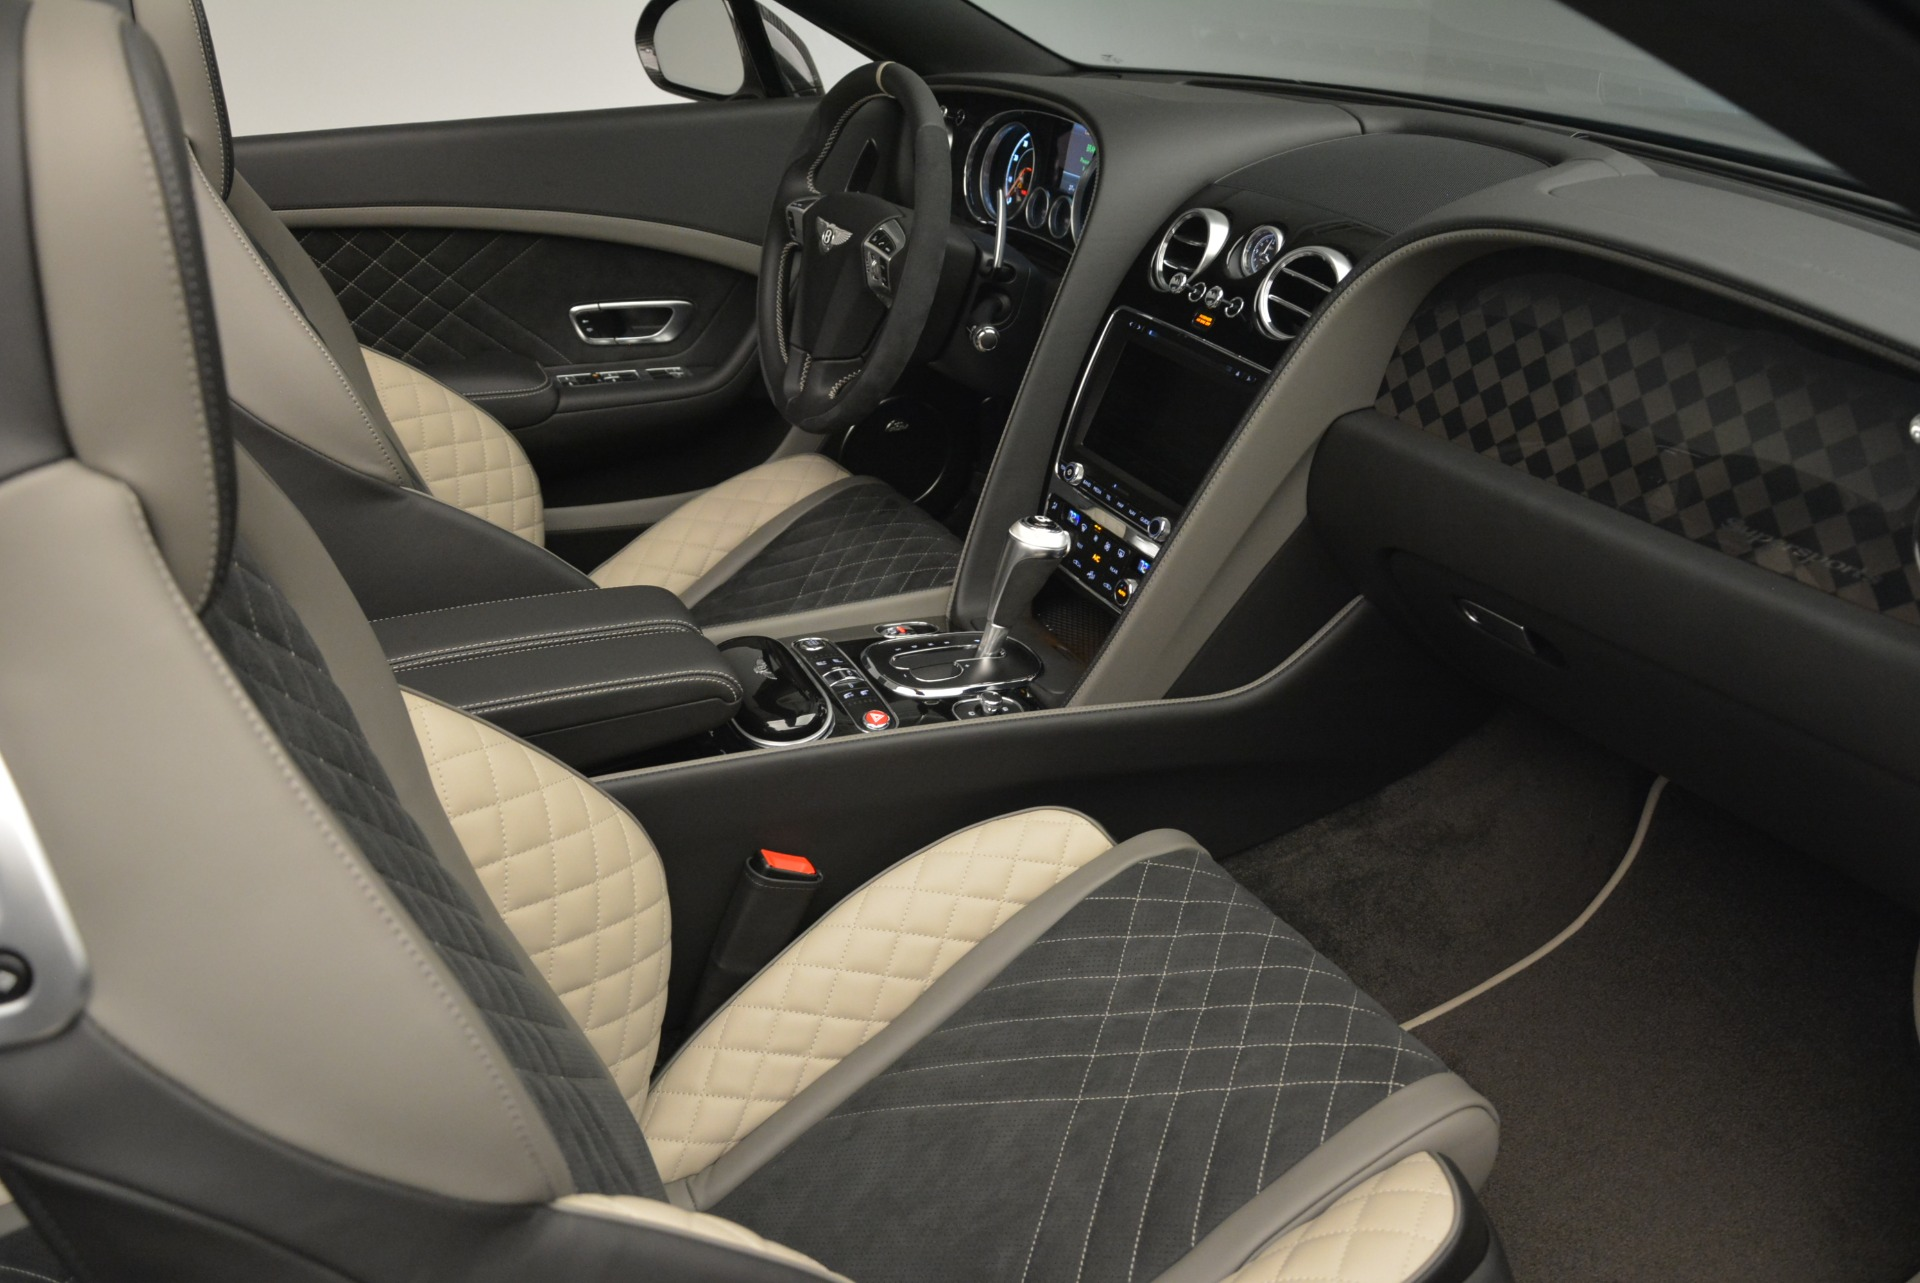 Used 2018 Bentley Continental GT Supersports Convertible For Sale In Westport, CT 2134_p27